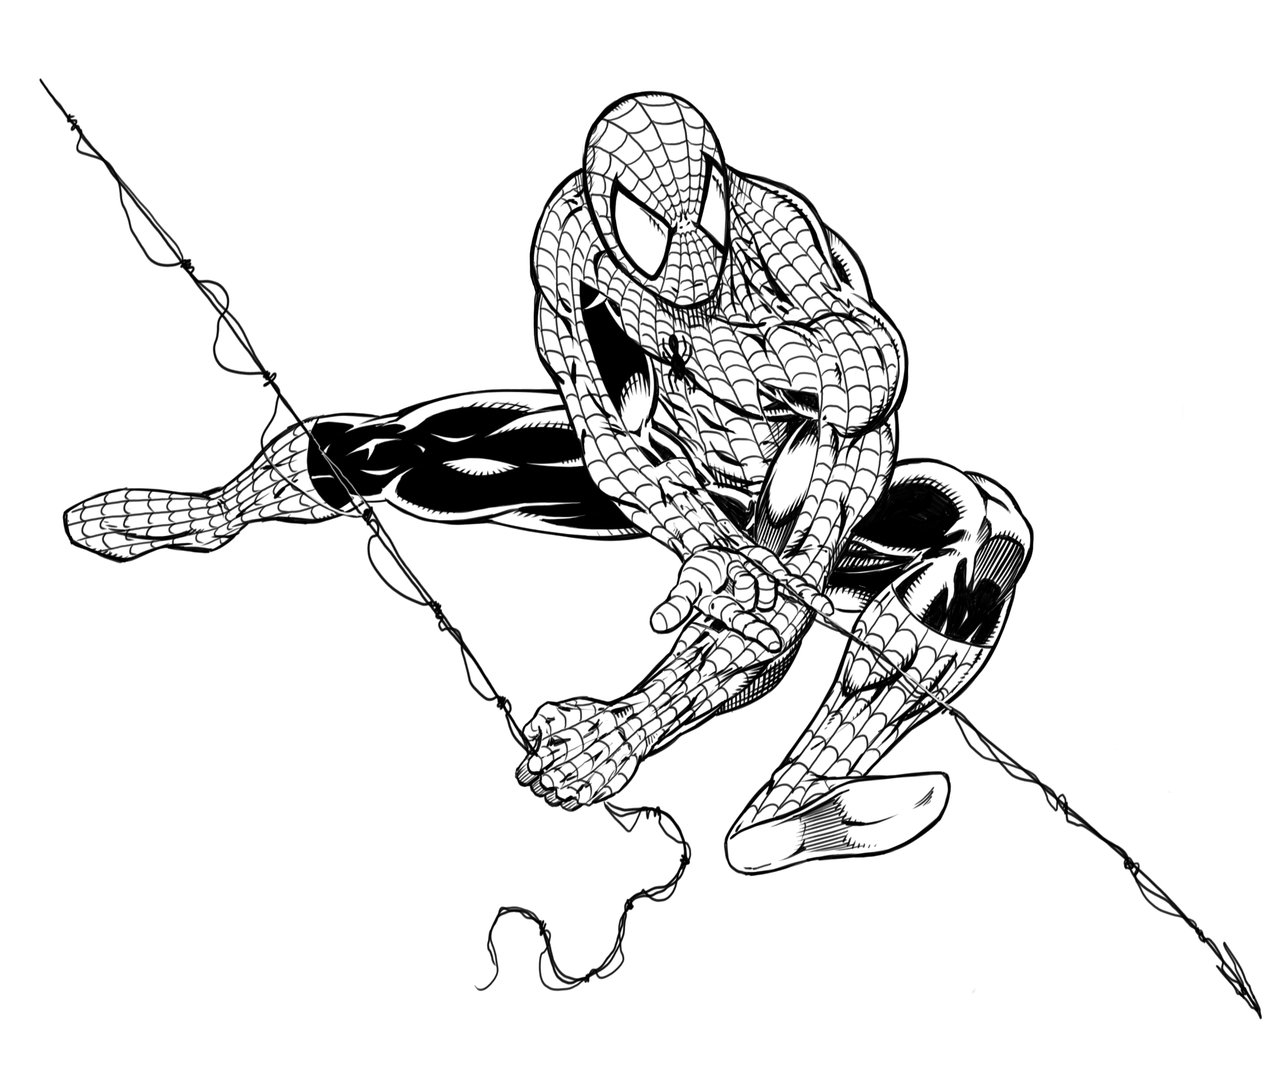 1280x1068 Sketch Spiderman Spiderman Realistic Art, Pencil Drawing Images